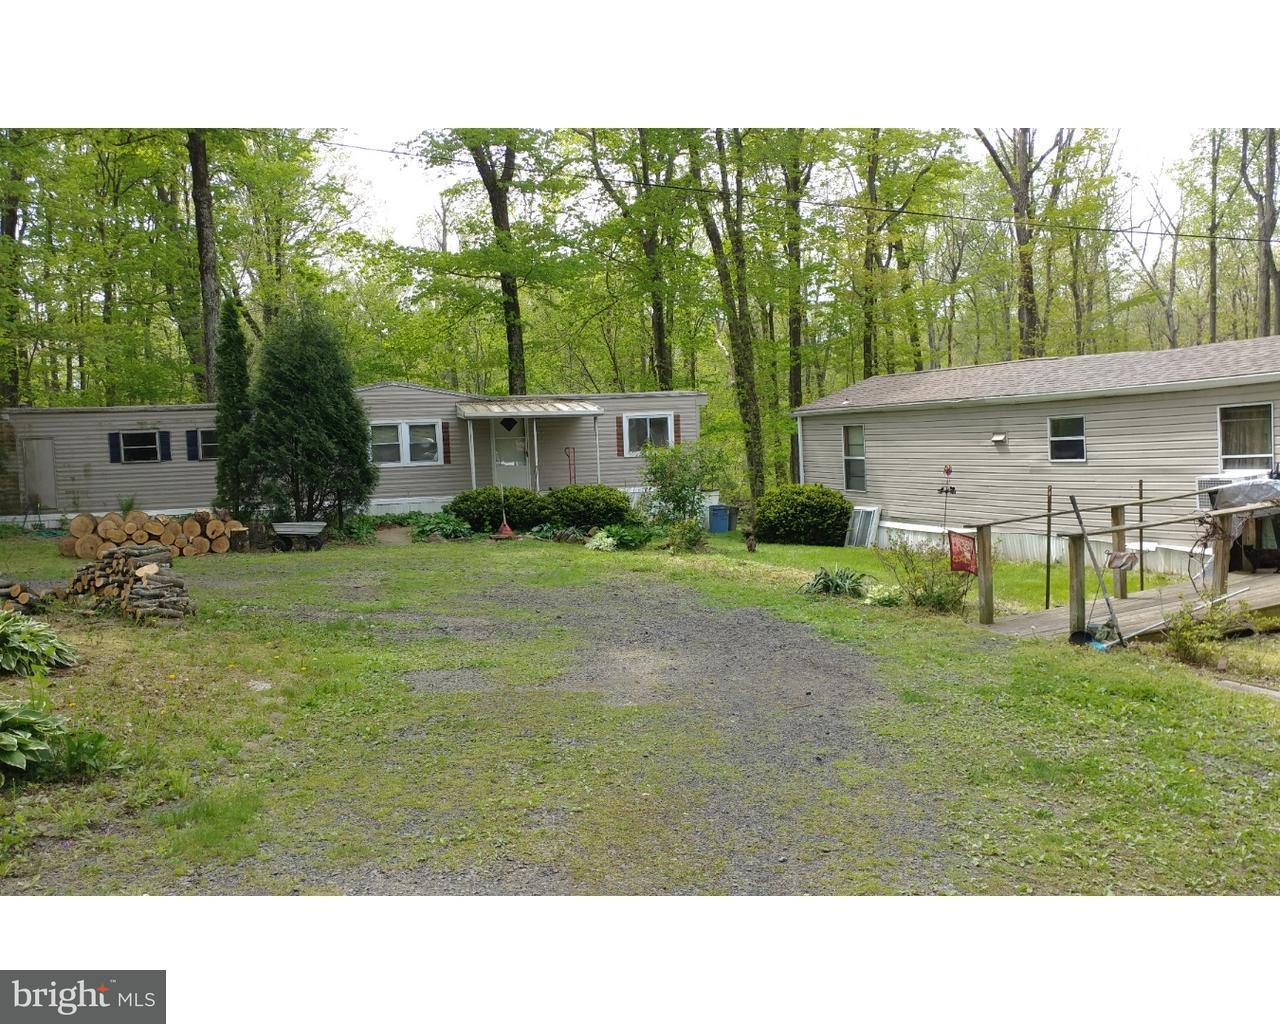 1097 W THATCHER RD, QUAKERTOWN - Listed at $179,900, QUAKERTOWN